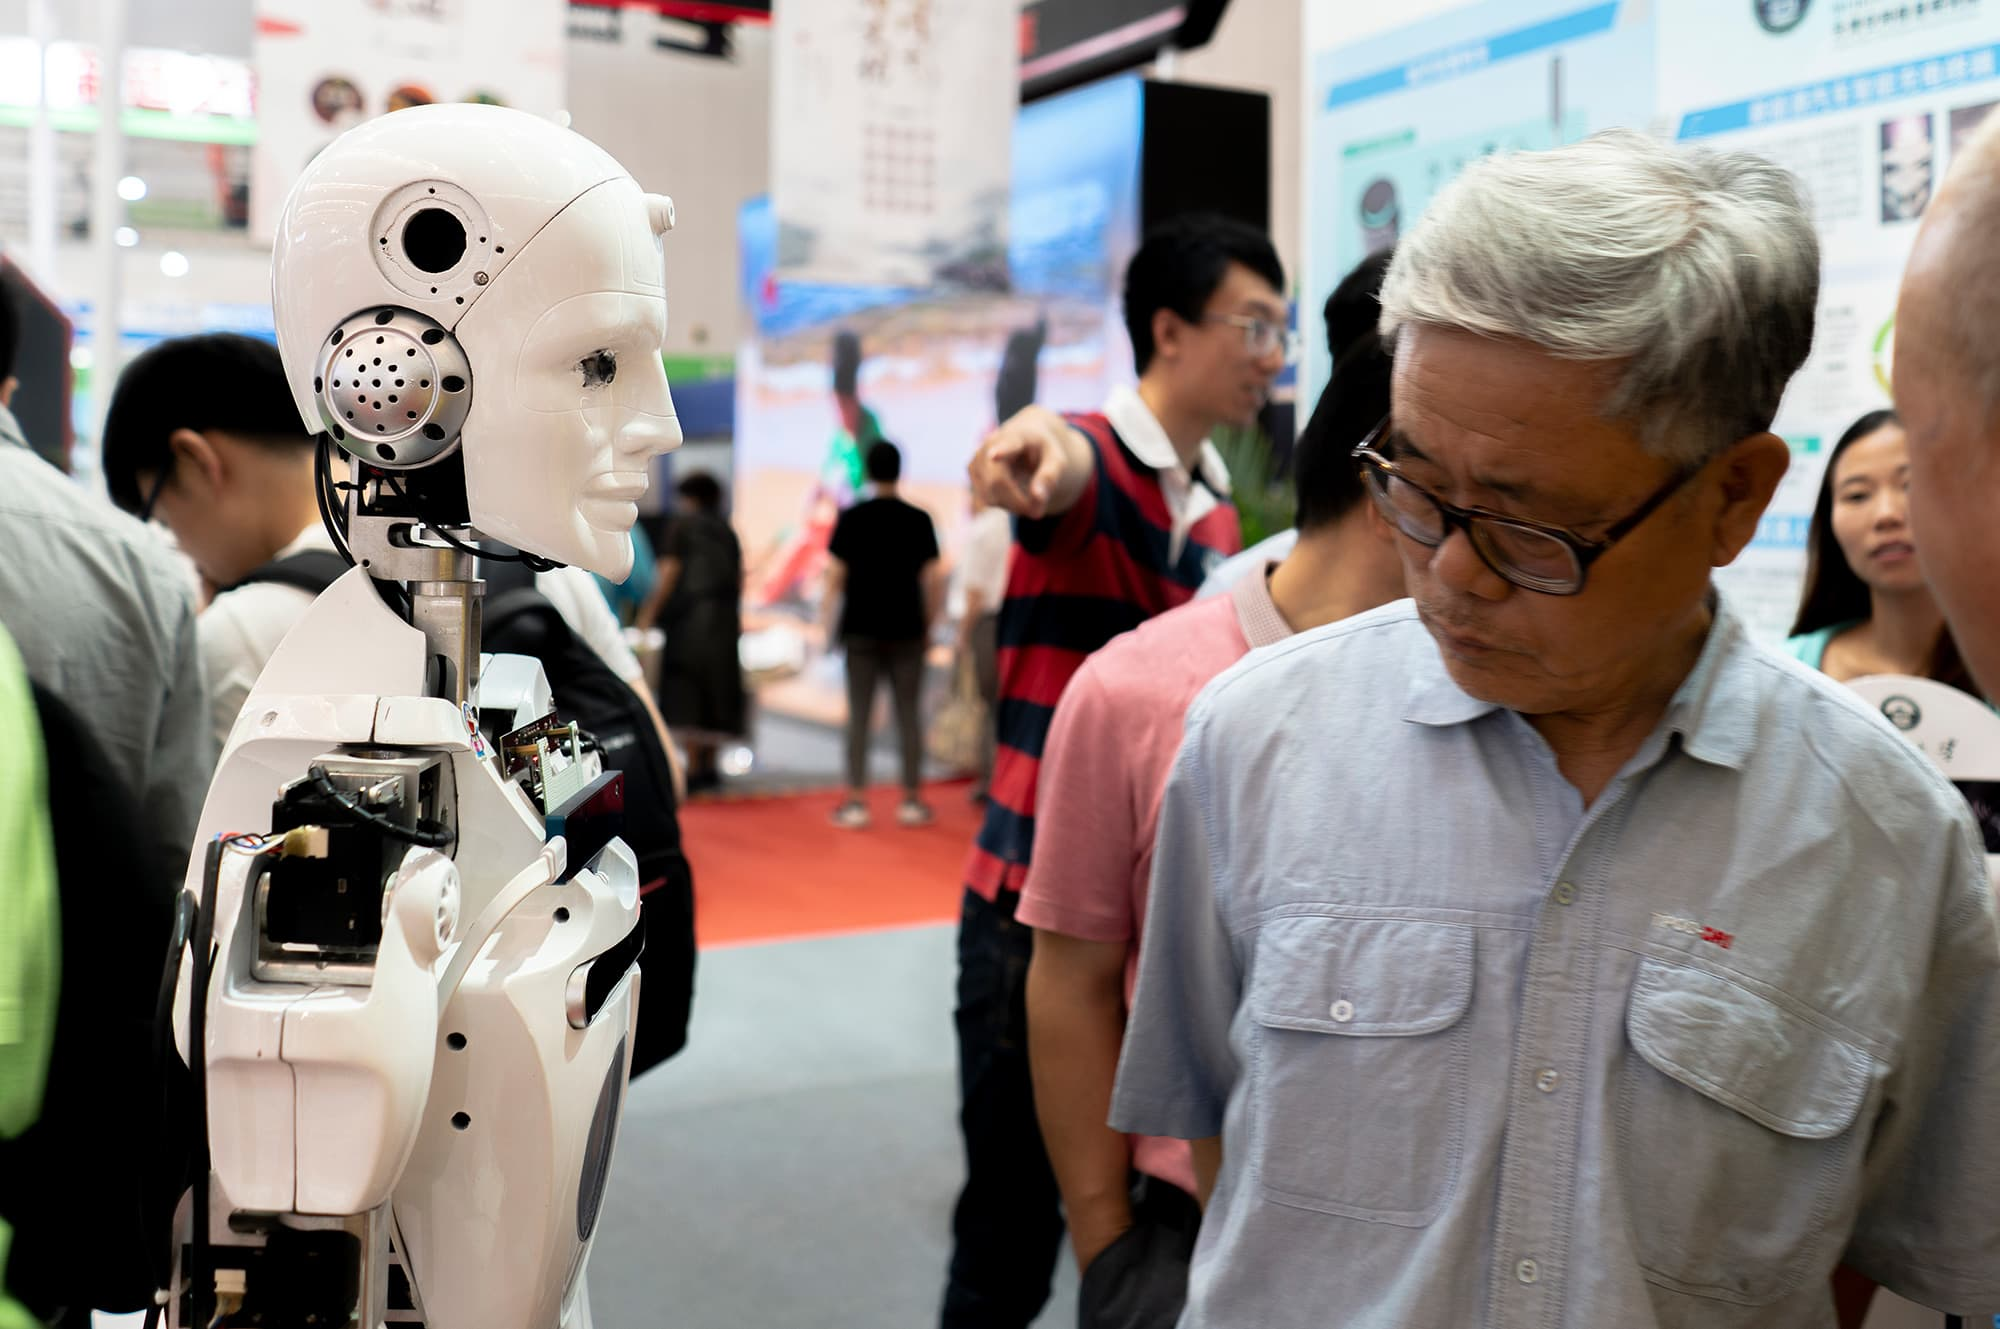 People are communicating with robots on the 2nd World Intelligence Congress, which was held in Tianjin Meijiang Exhibition Center from May 16-18, 2018.